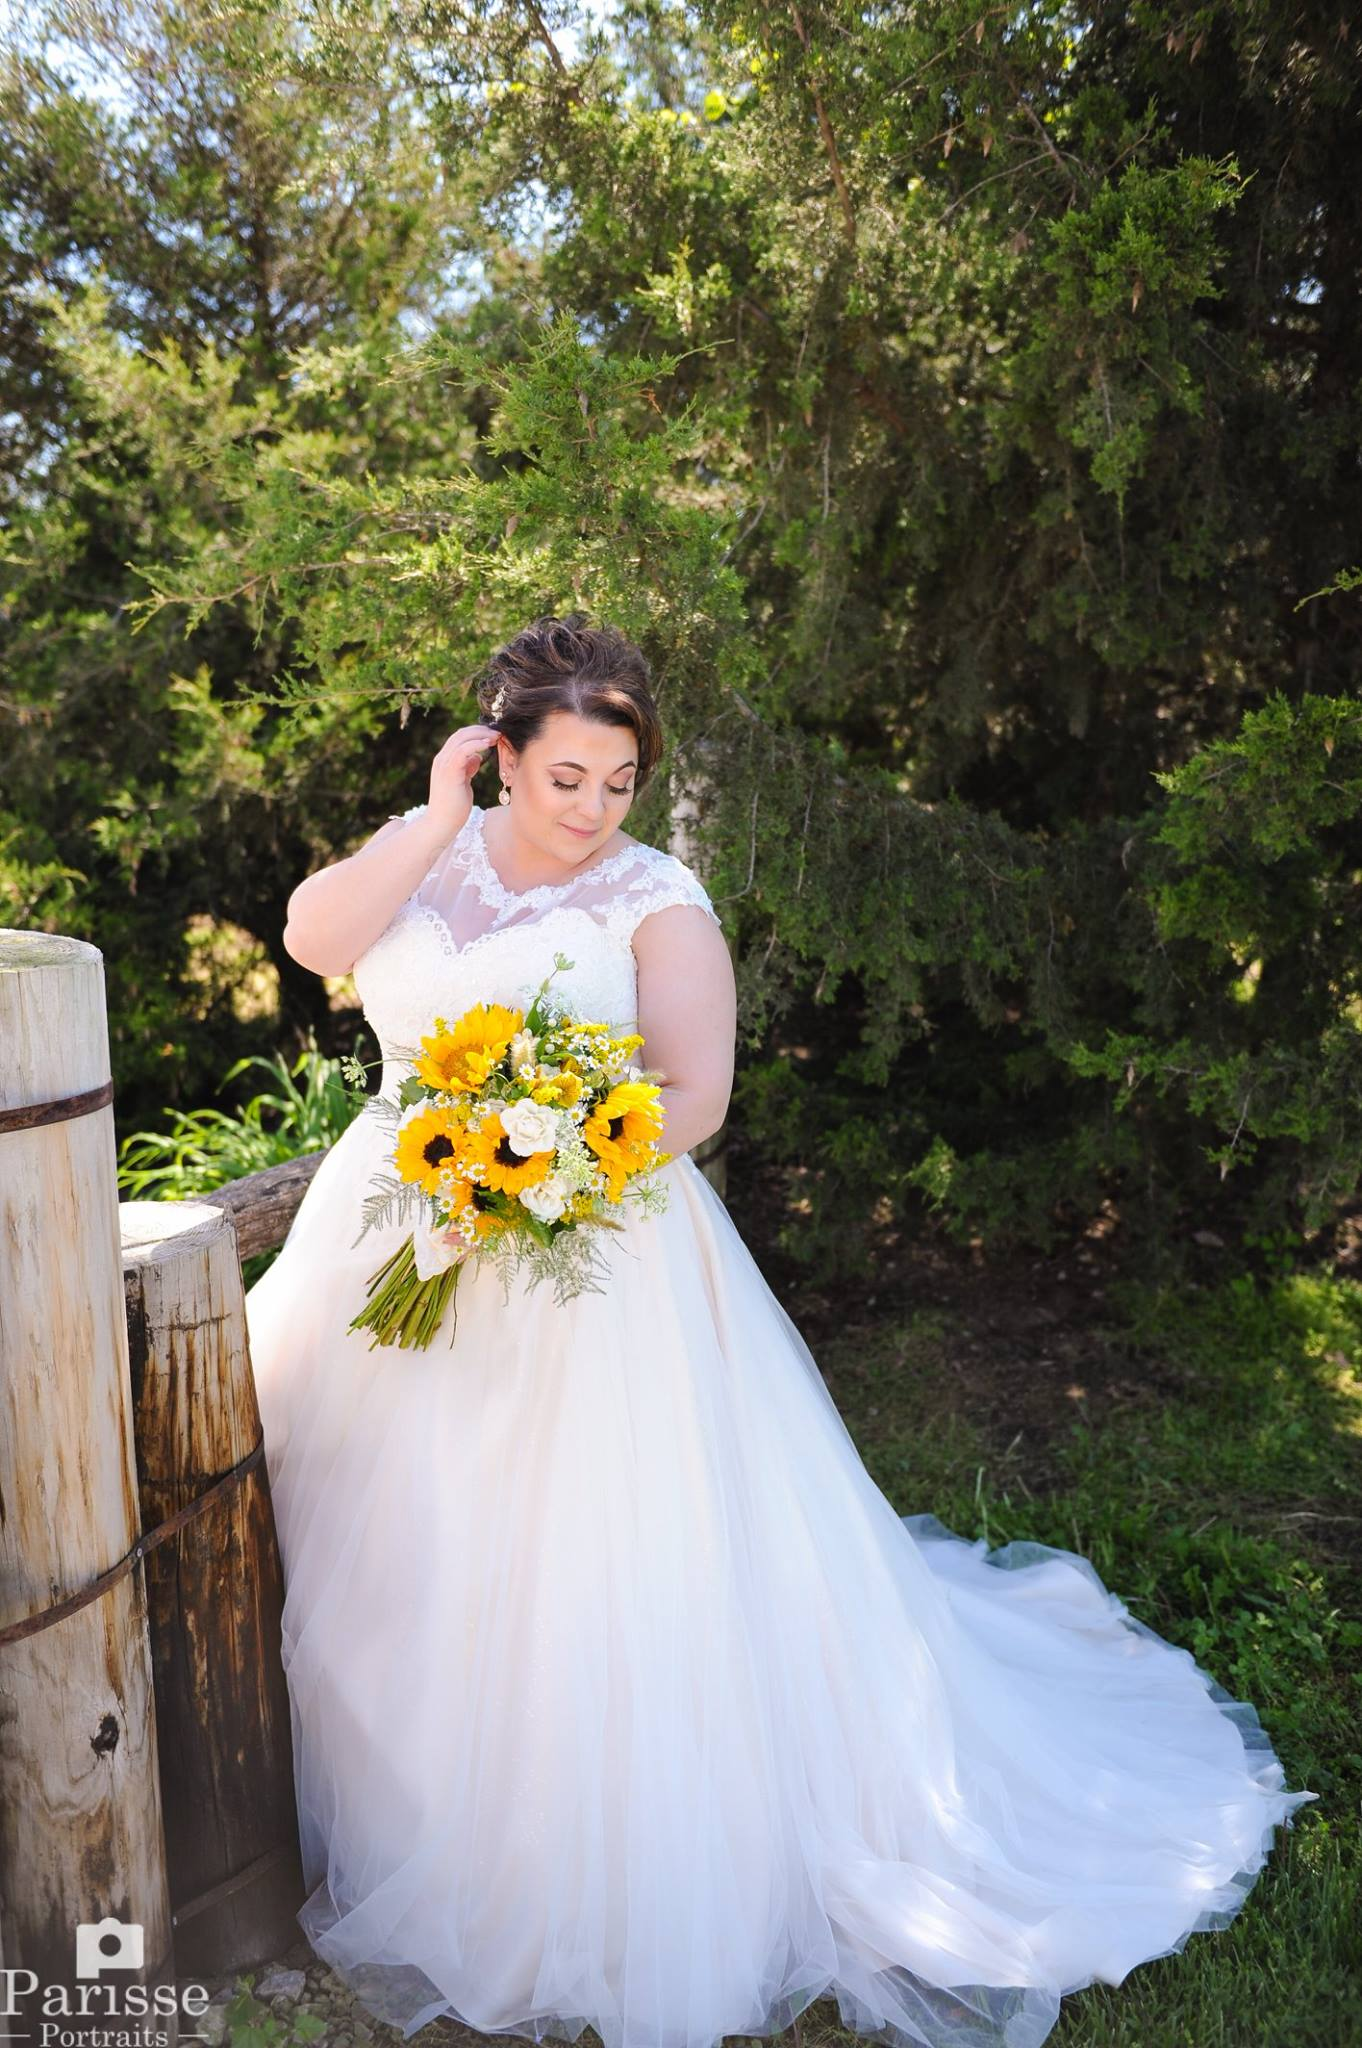 blog wedding dresses kansas city Plus Size Wedding Dress Kansas City Plus Size Bridal Salon All My Heart Bridal